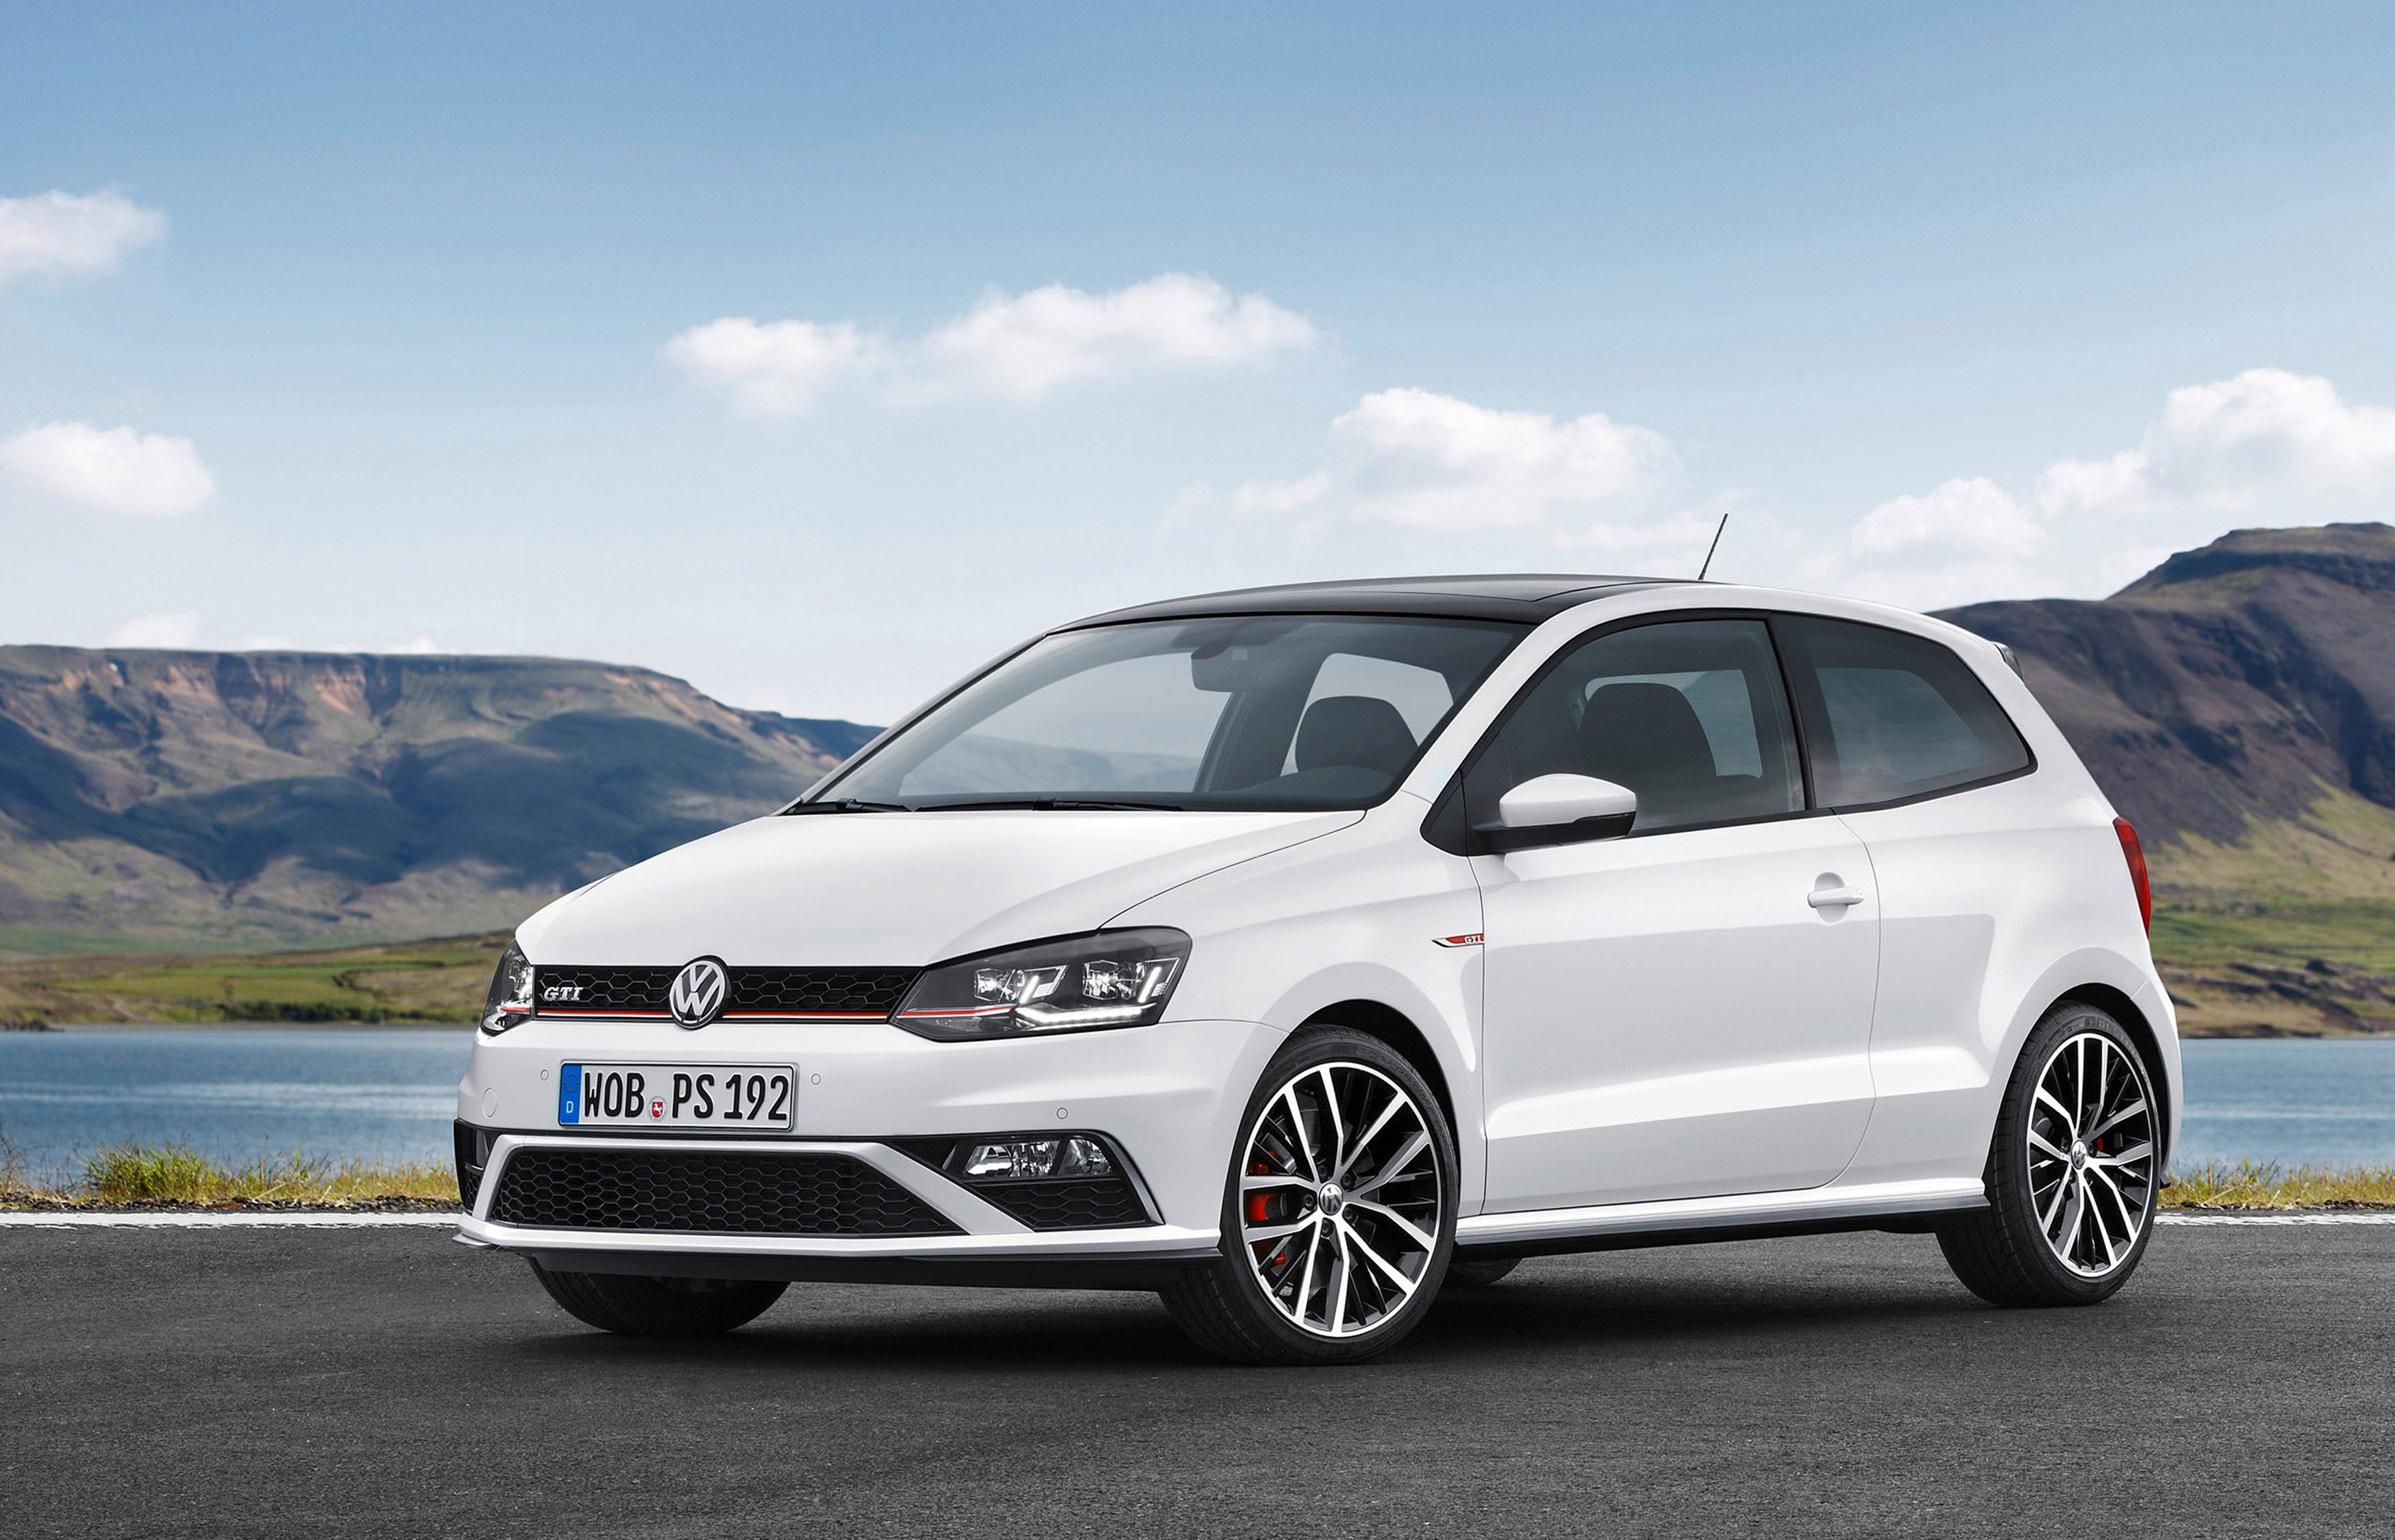 Volkswagen Polo Wallpapers Images Photos Pictures Backgrounds